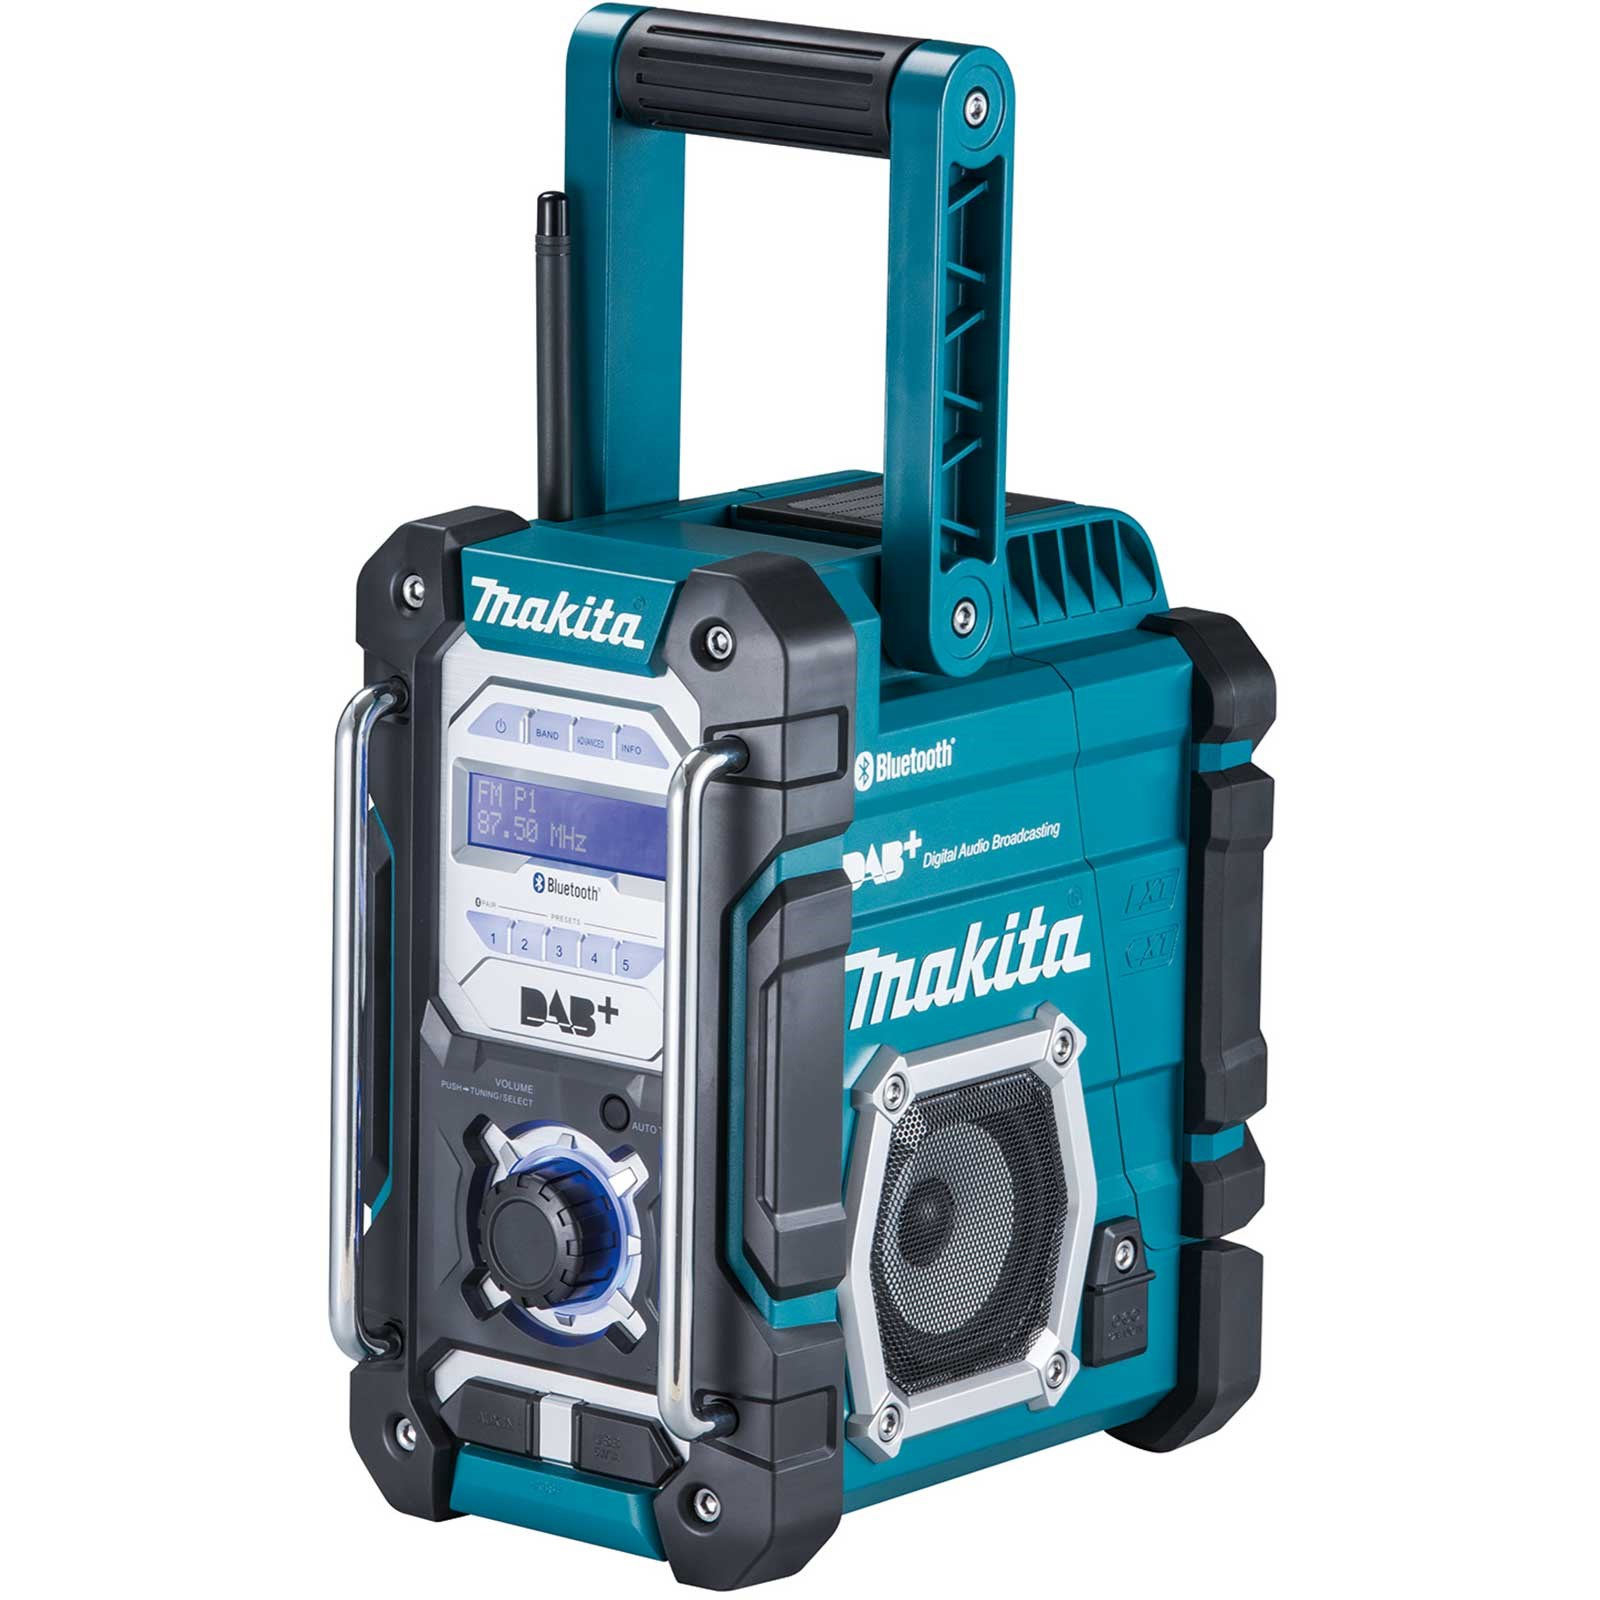 Makita DMR112 DAB+ Job Site Radio and Bluetooth Connection - Body Only